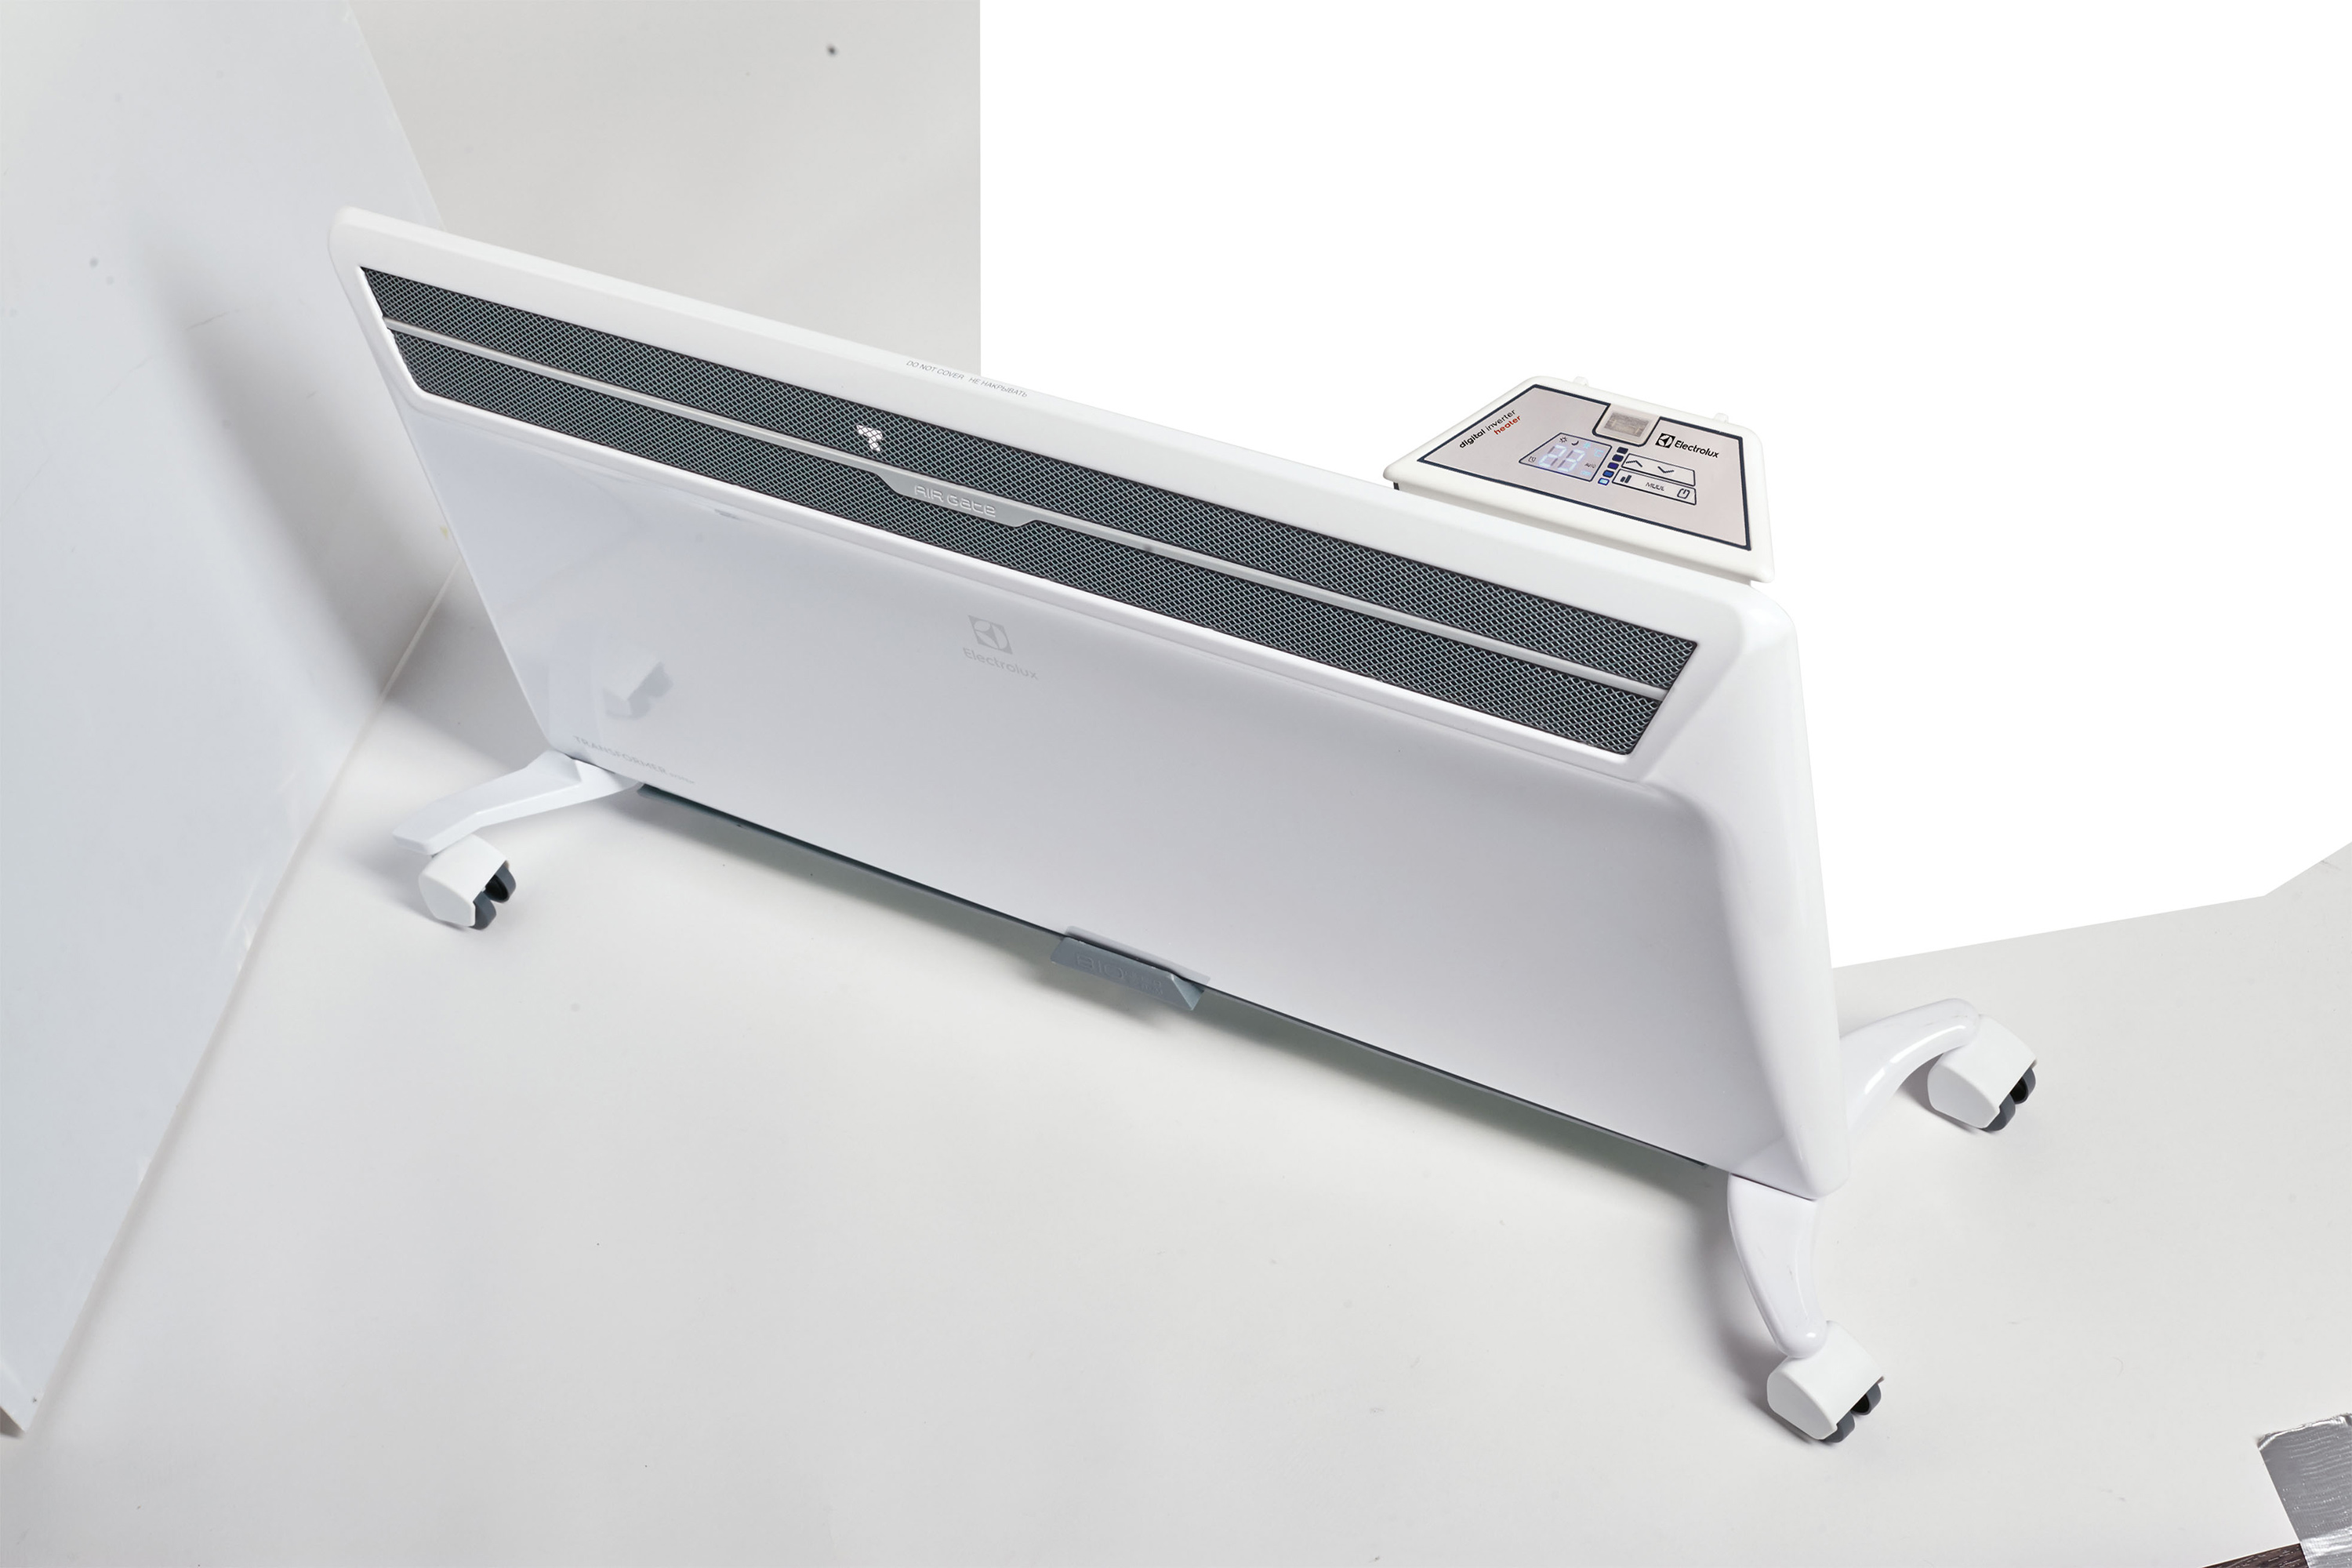 Convector Electrolux ECH-AGI-1800 EU , Recommended room size 25m2, 200